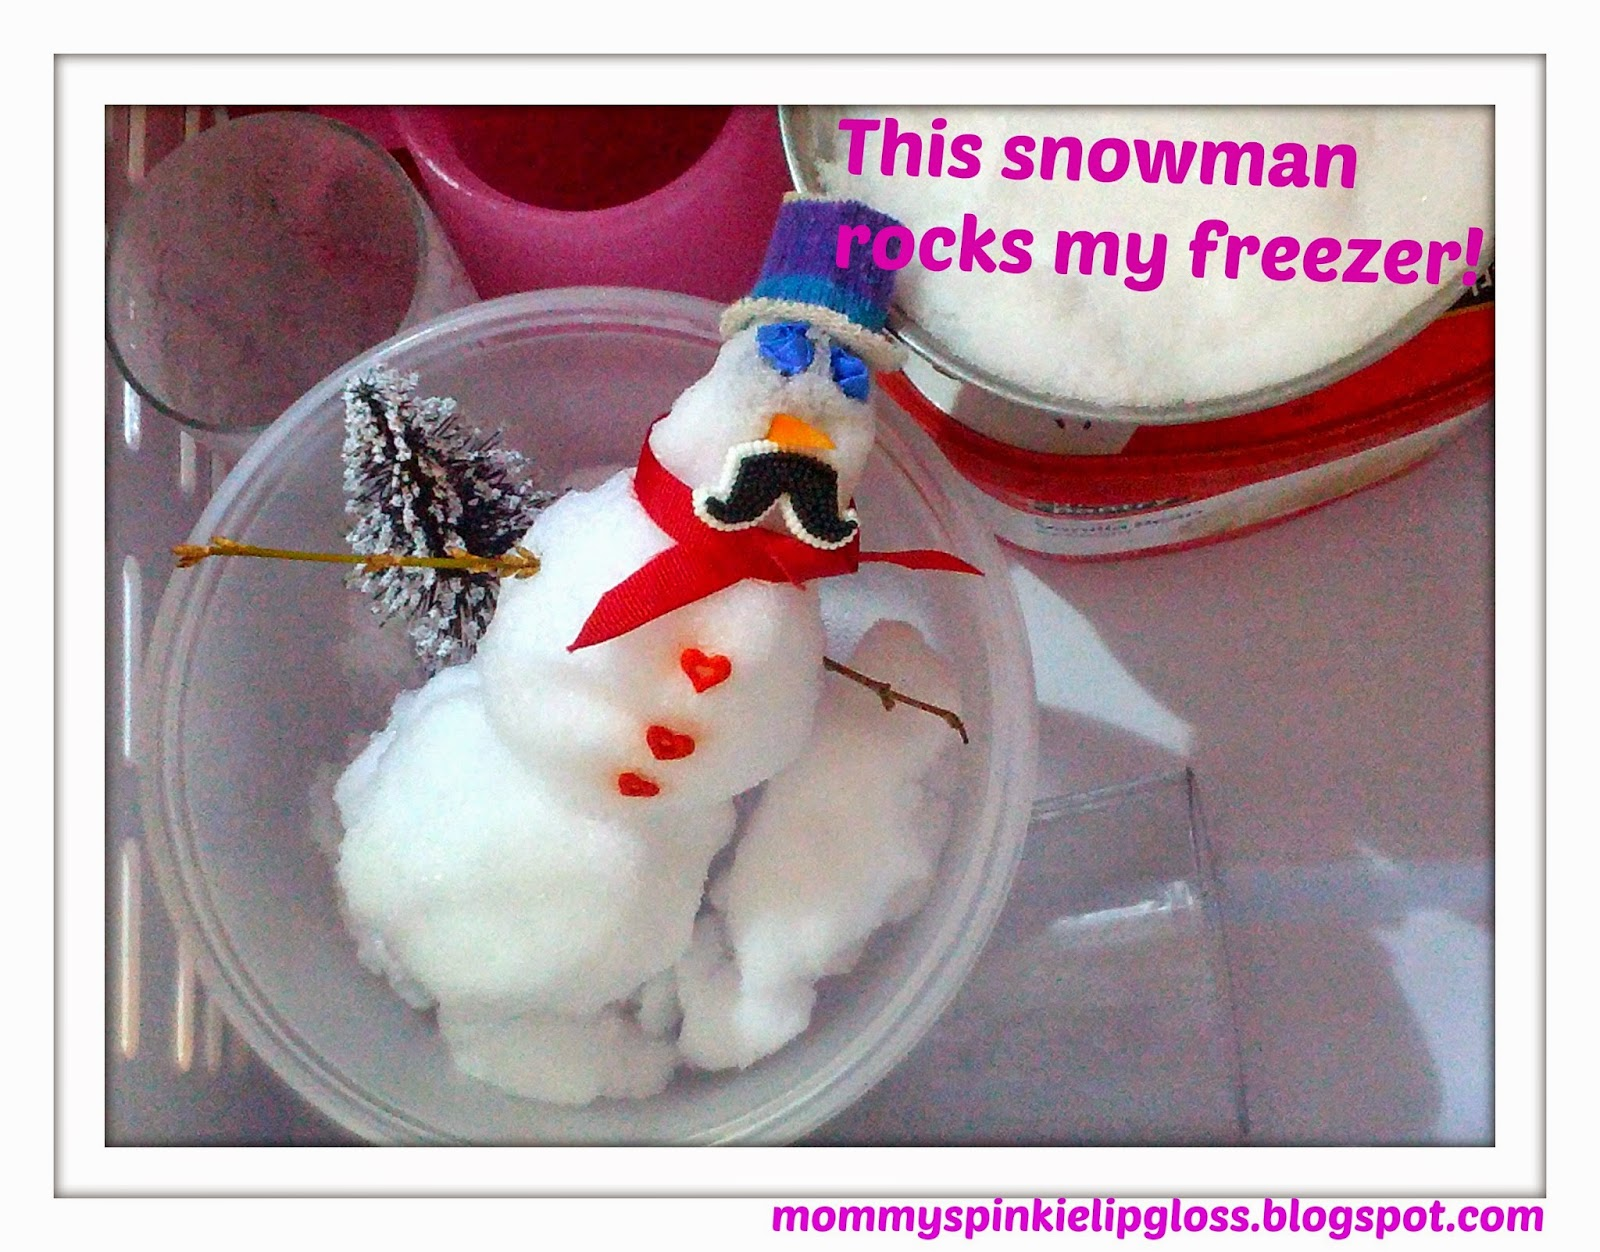 snowman in my freezer from MommysPinkieLipgloss.blogspot.com